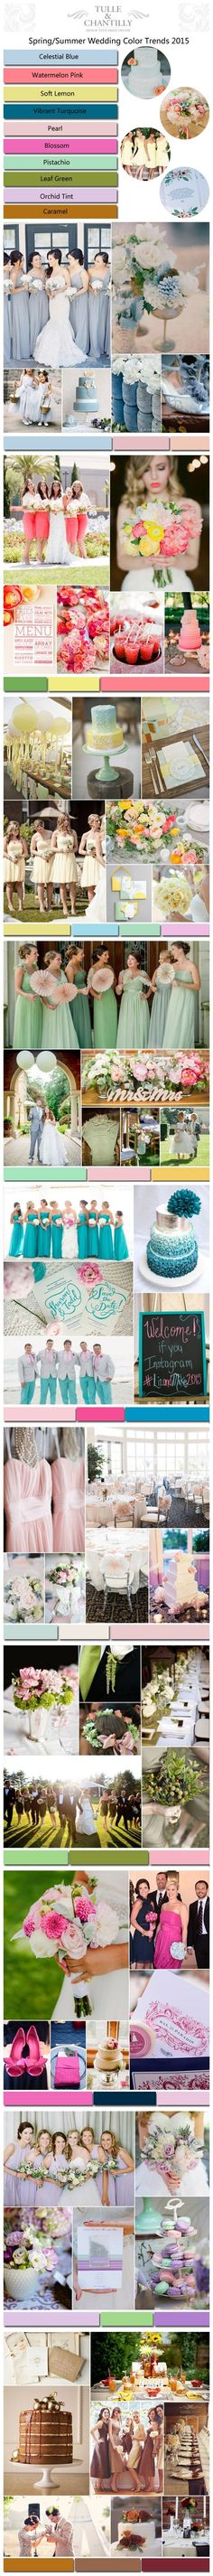 Top 10 Spring/Summer Wedding Color Ideas & Trends 2015 - See more at: http://www.tulleandchantilly.com/blog/top-10-springsummer-wedding-color-ideas-trends-2015-part-i